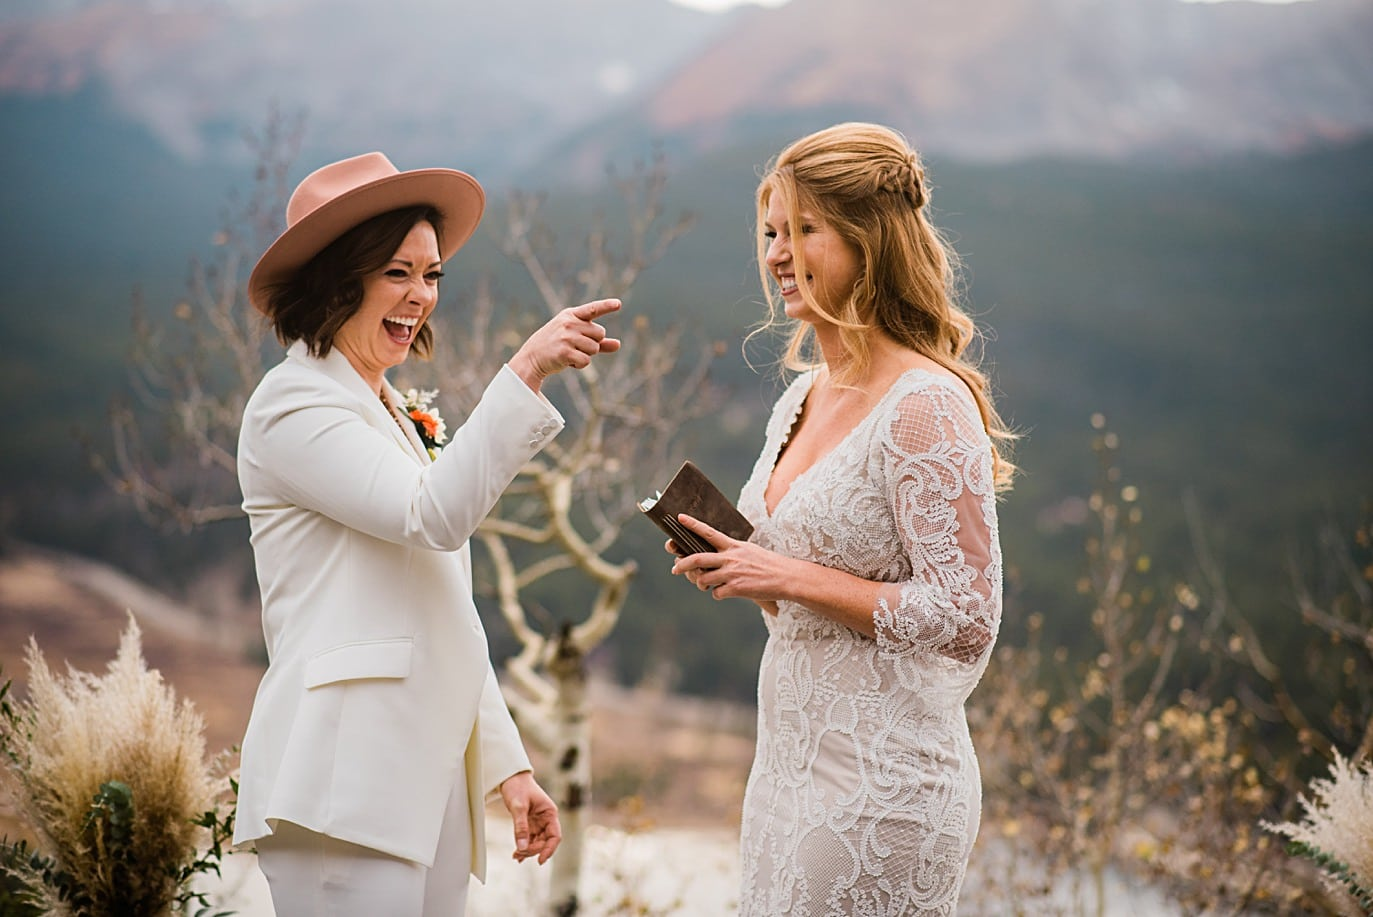 brides laugh through ceremony at Boreas Pass microwedding by Colorado gay wedding photographer Jennie Crate